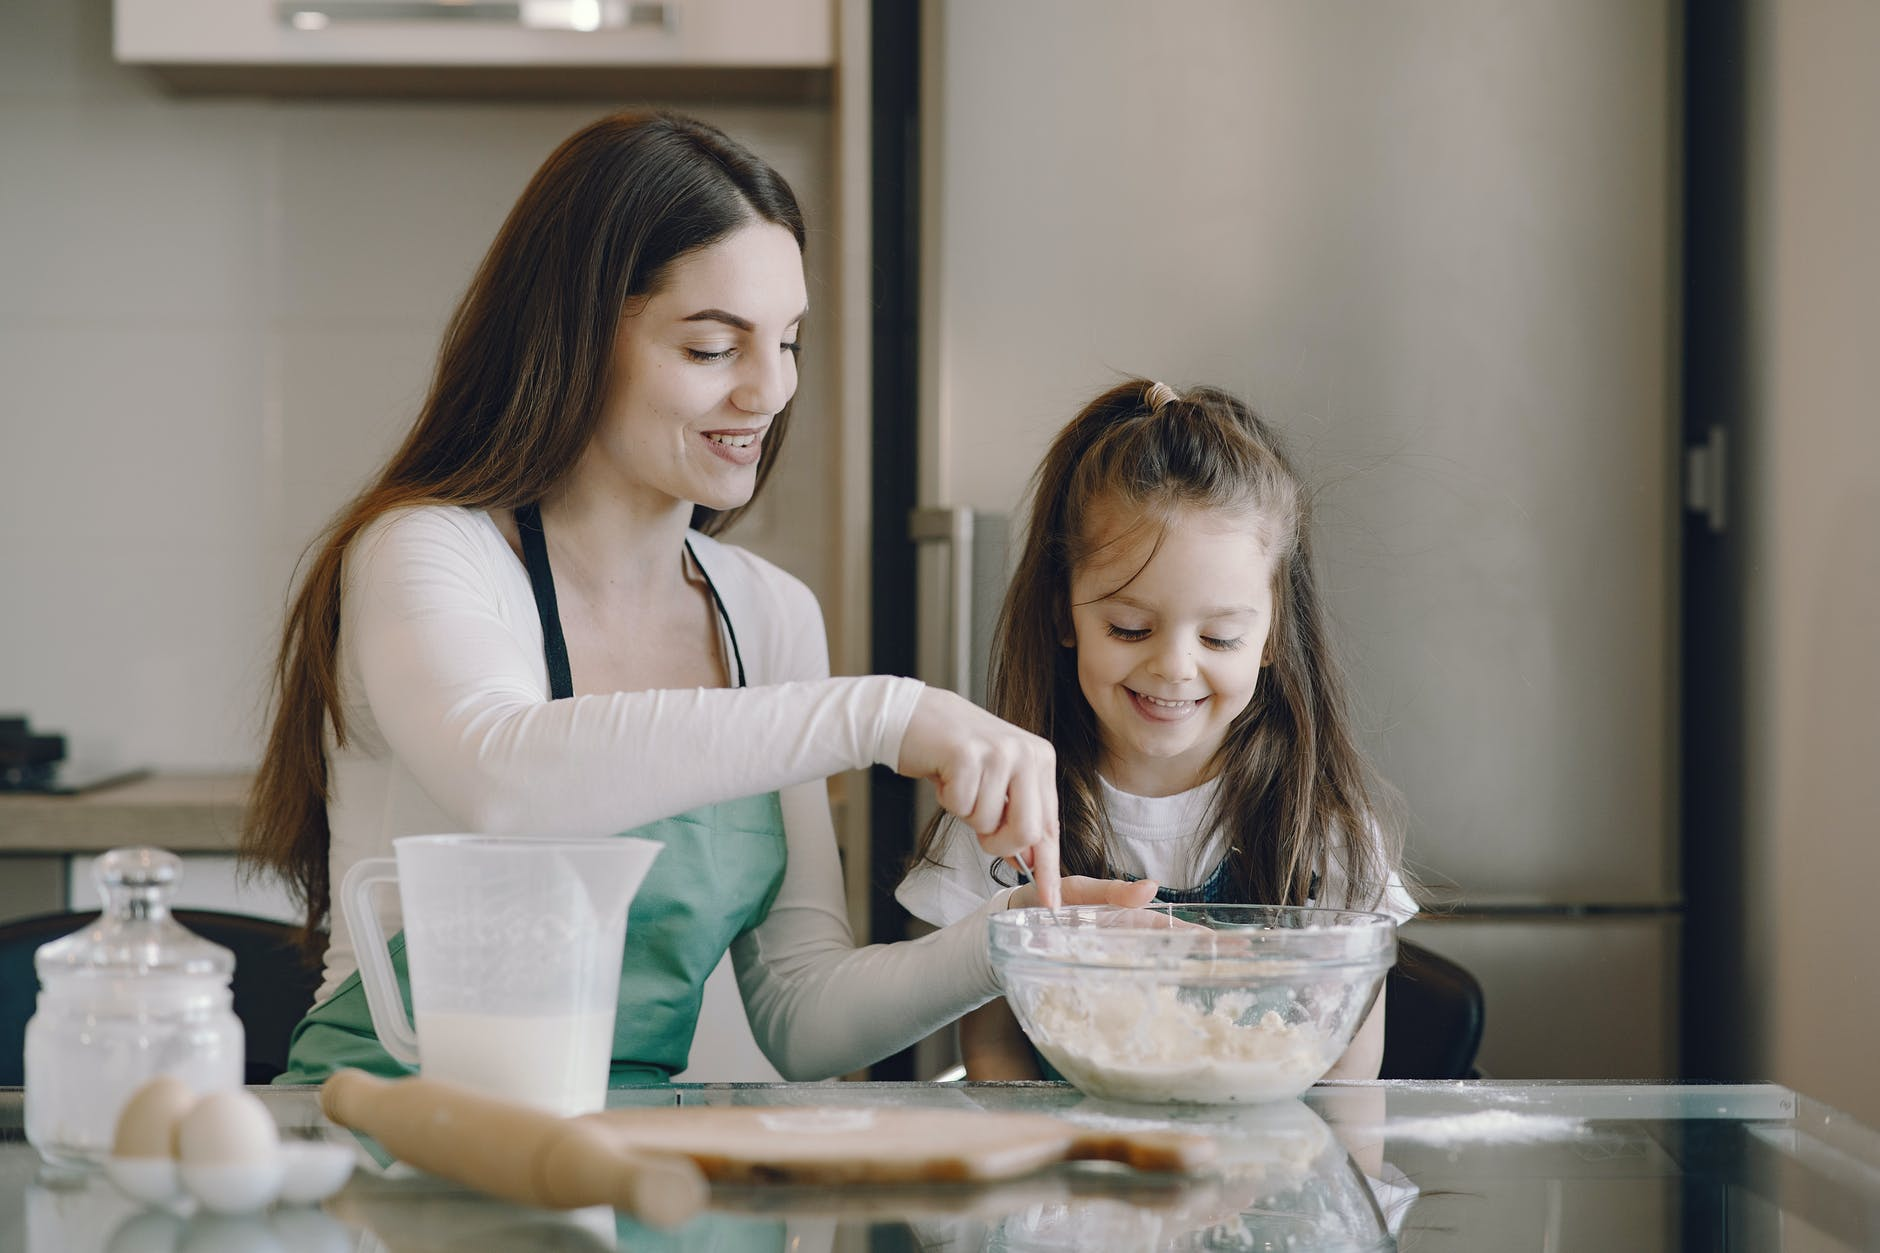 Woman and child smiling while baking. | Photo: Pexels